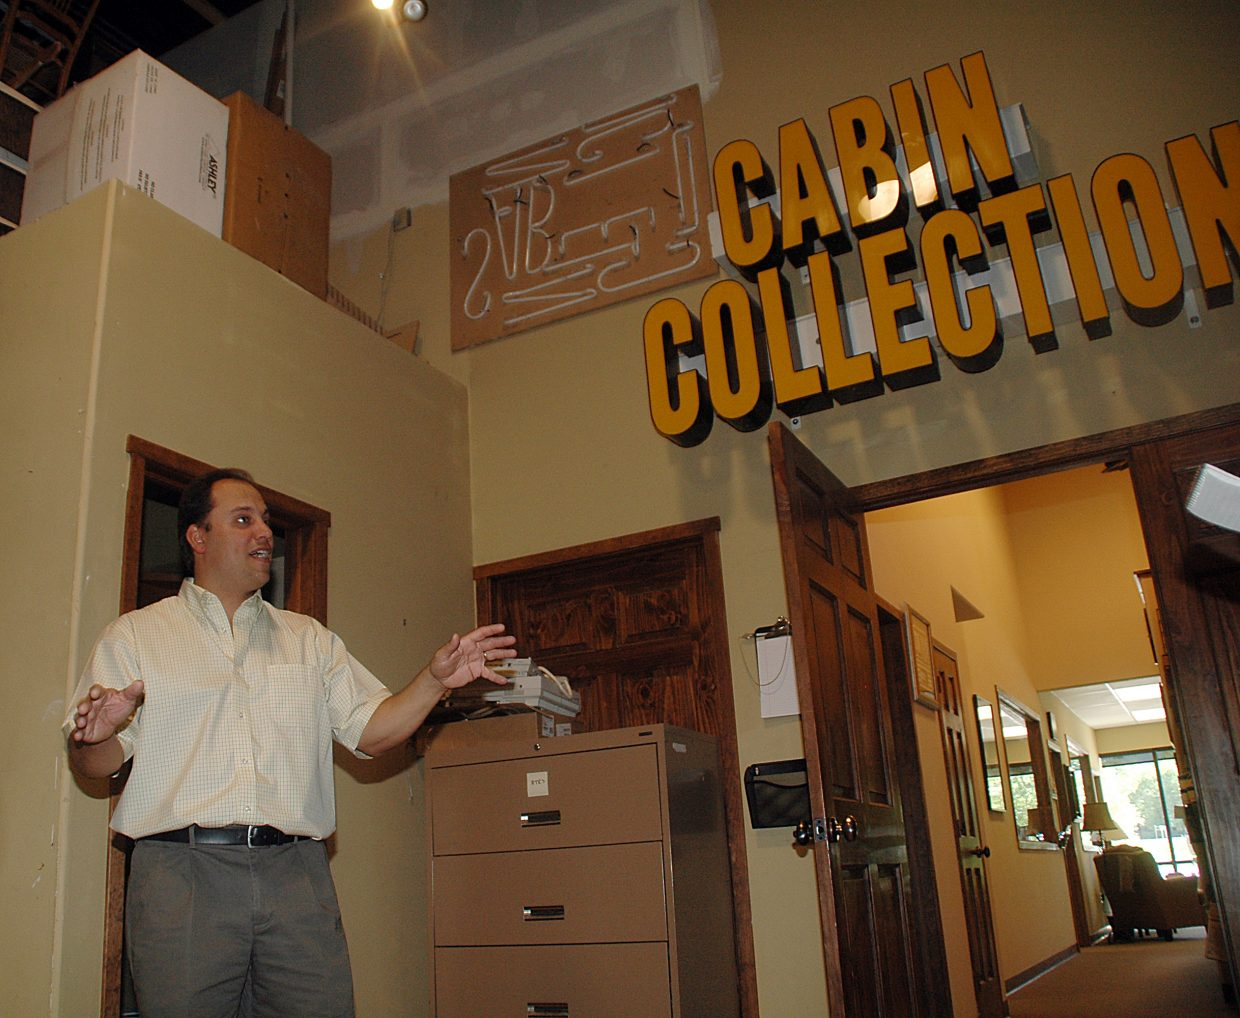 Michael Buccino, owner of Steamboat Interiors, explains how he saved thousands of dollars and likely his business by drastically scaling back the scale of his operation. In its heyday several years ago, he opened Cabin Collections to sell high-end furniture from an east Steamboat Springs storefront. He eventually closed the business, though its sign still hangs in his scaled-back warehouse.